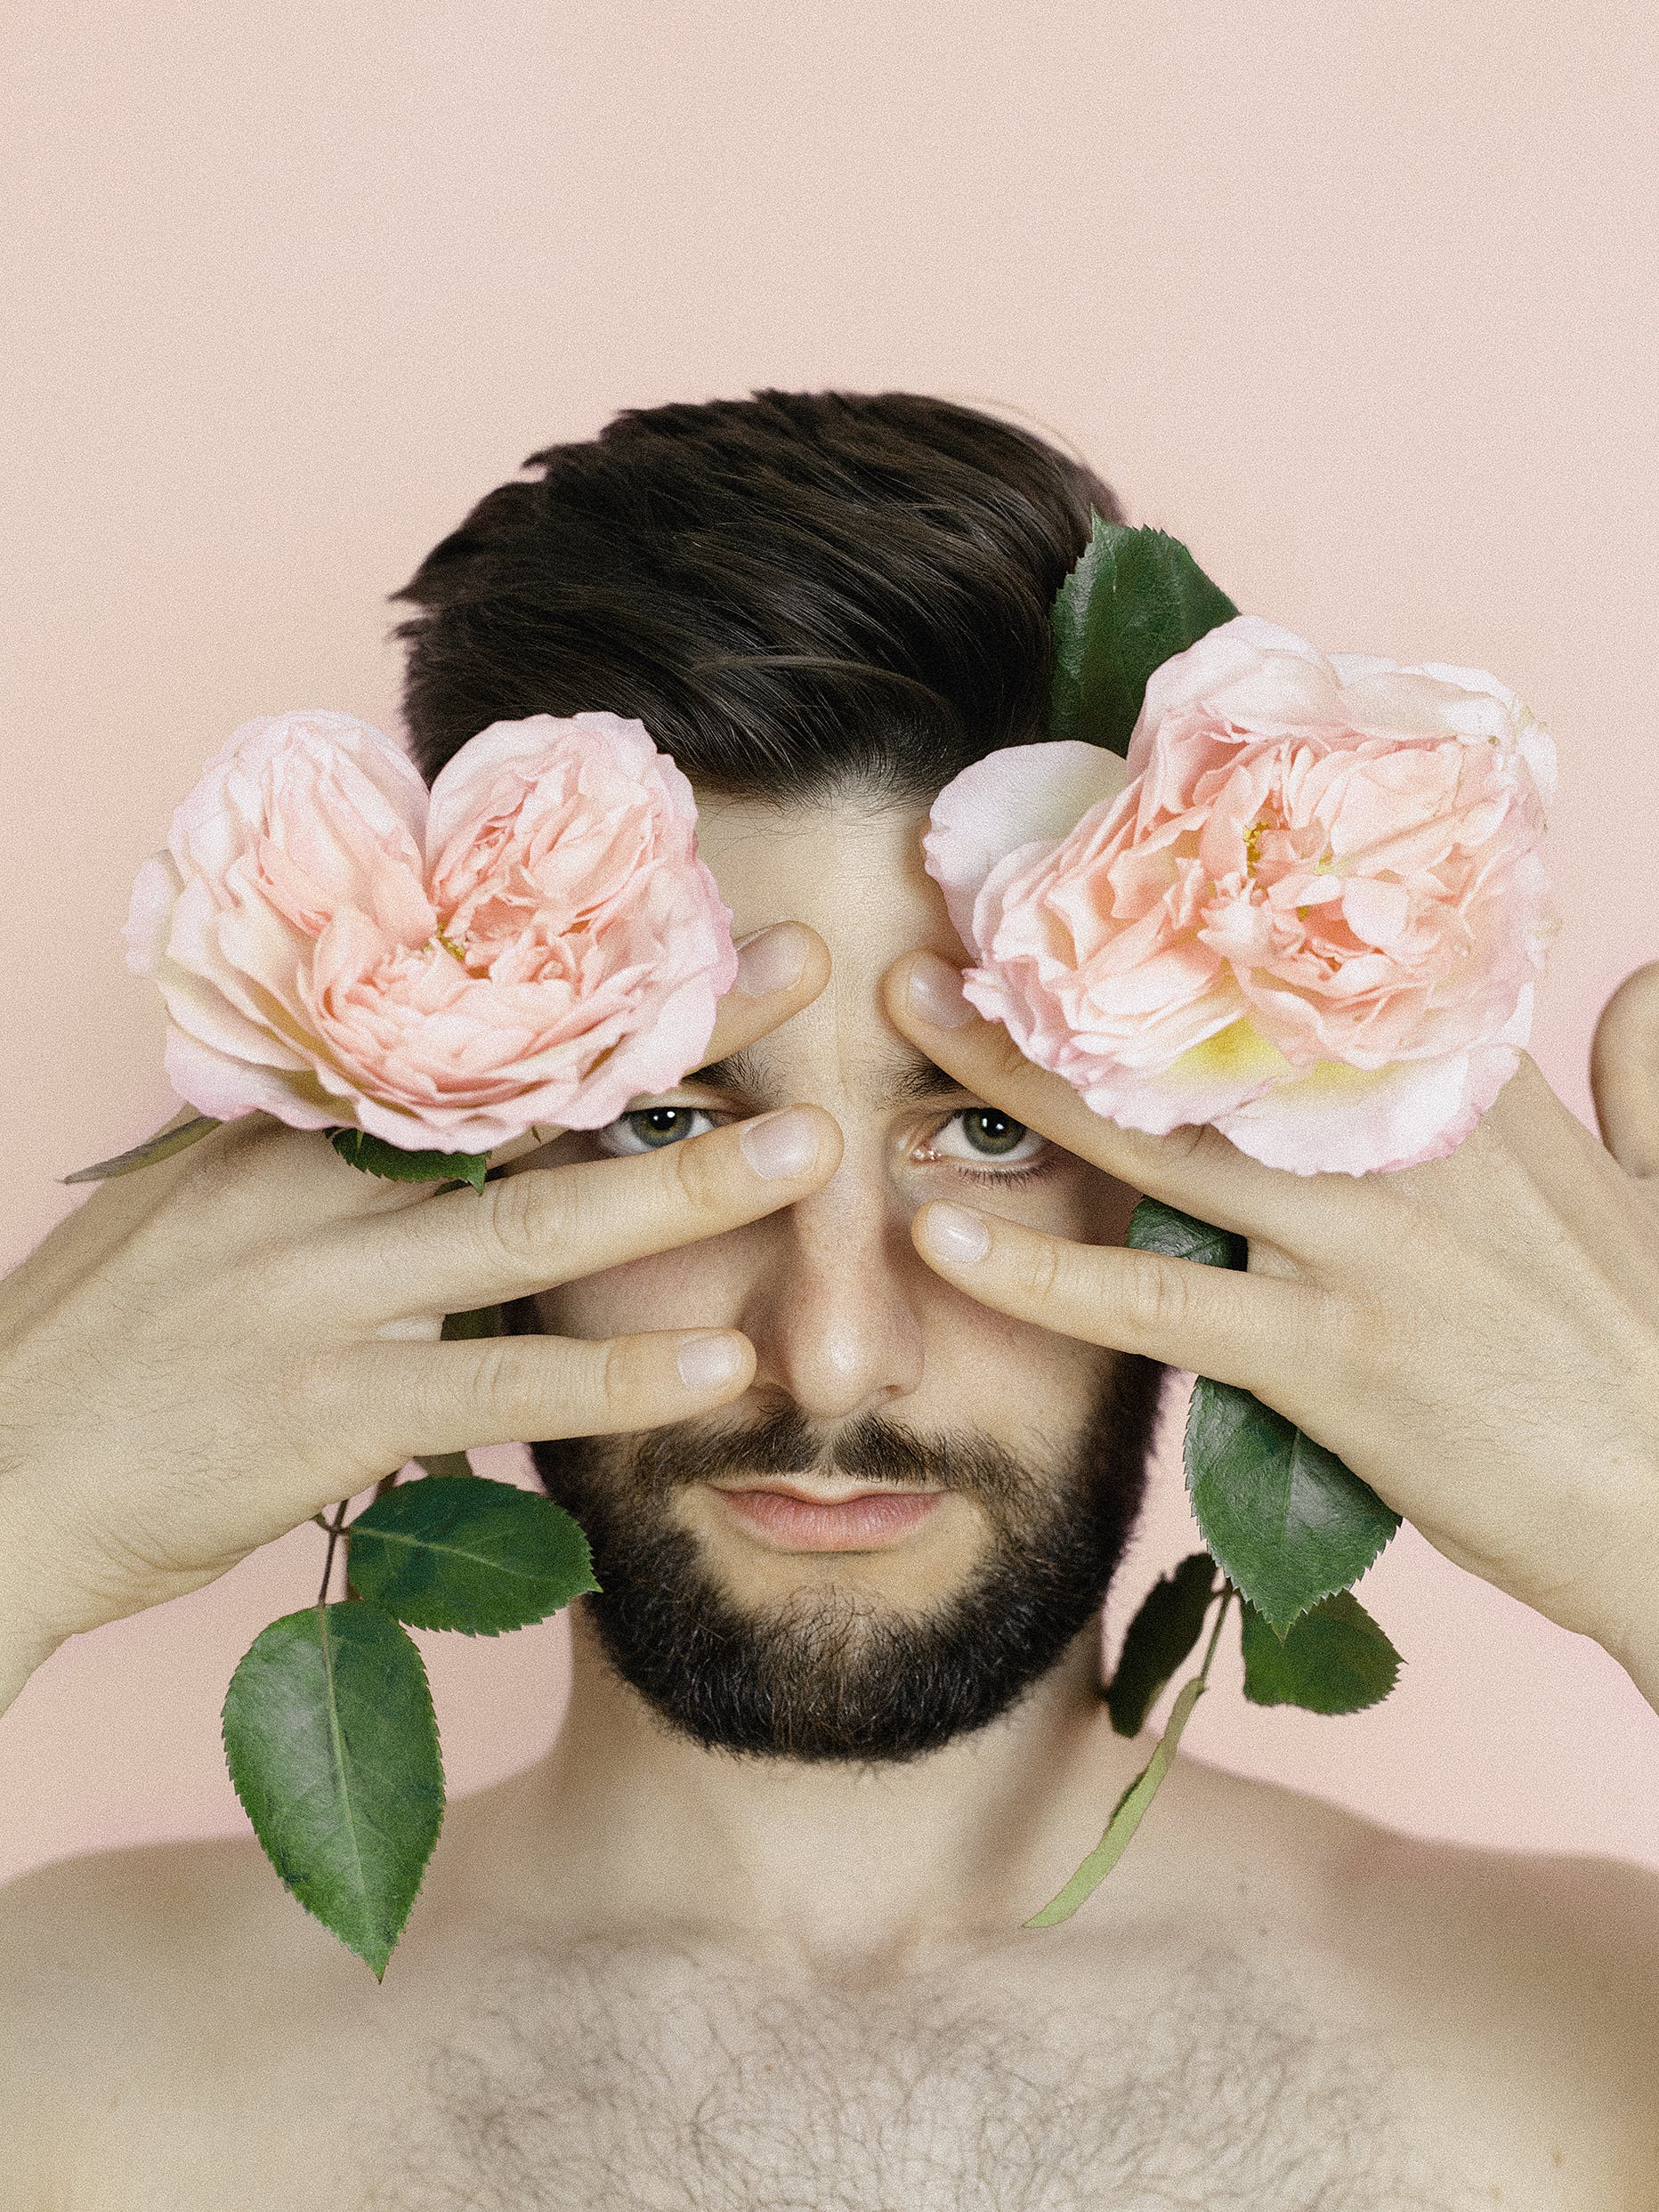 Man Holding Two Pink Flowers